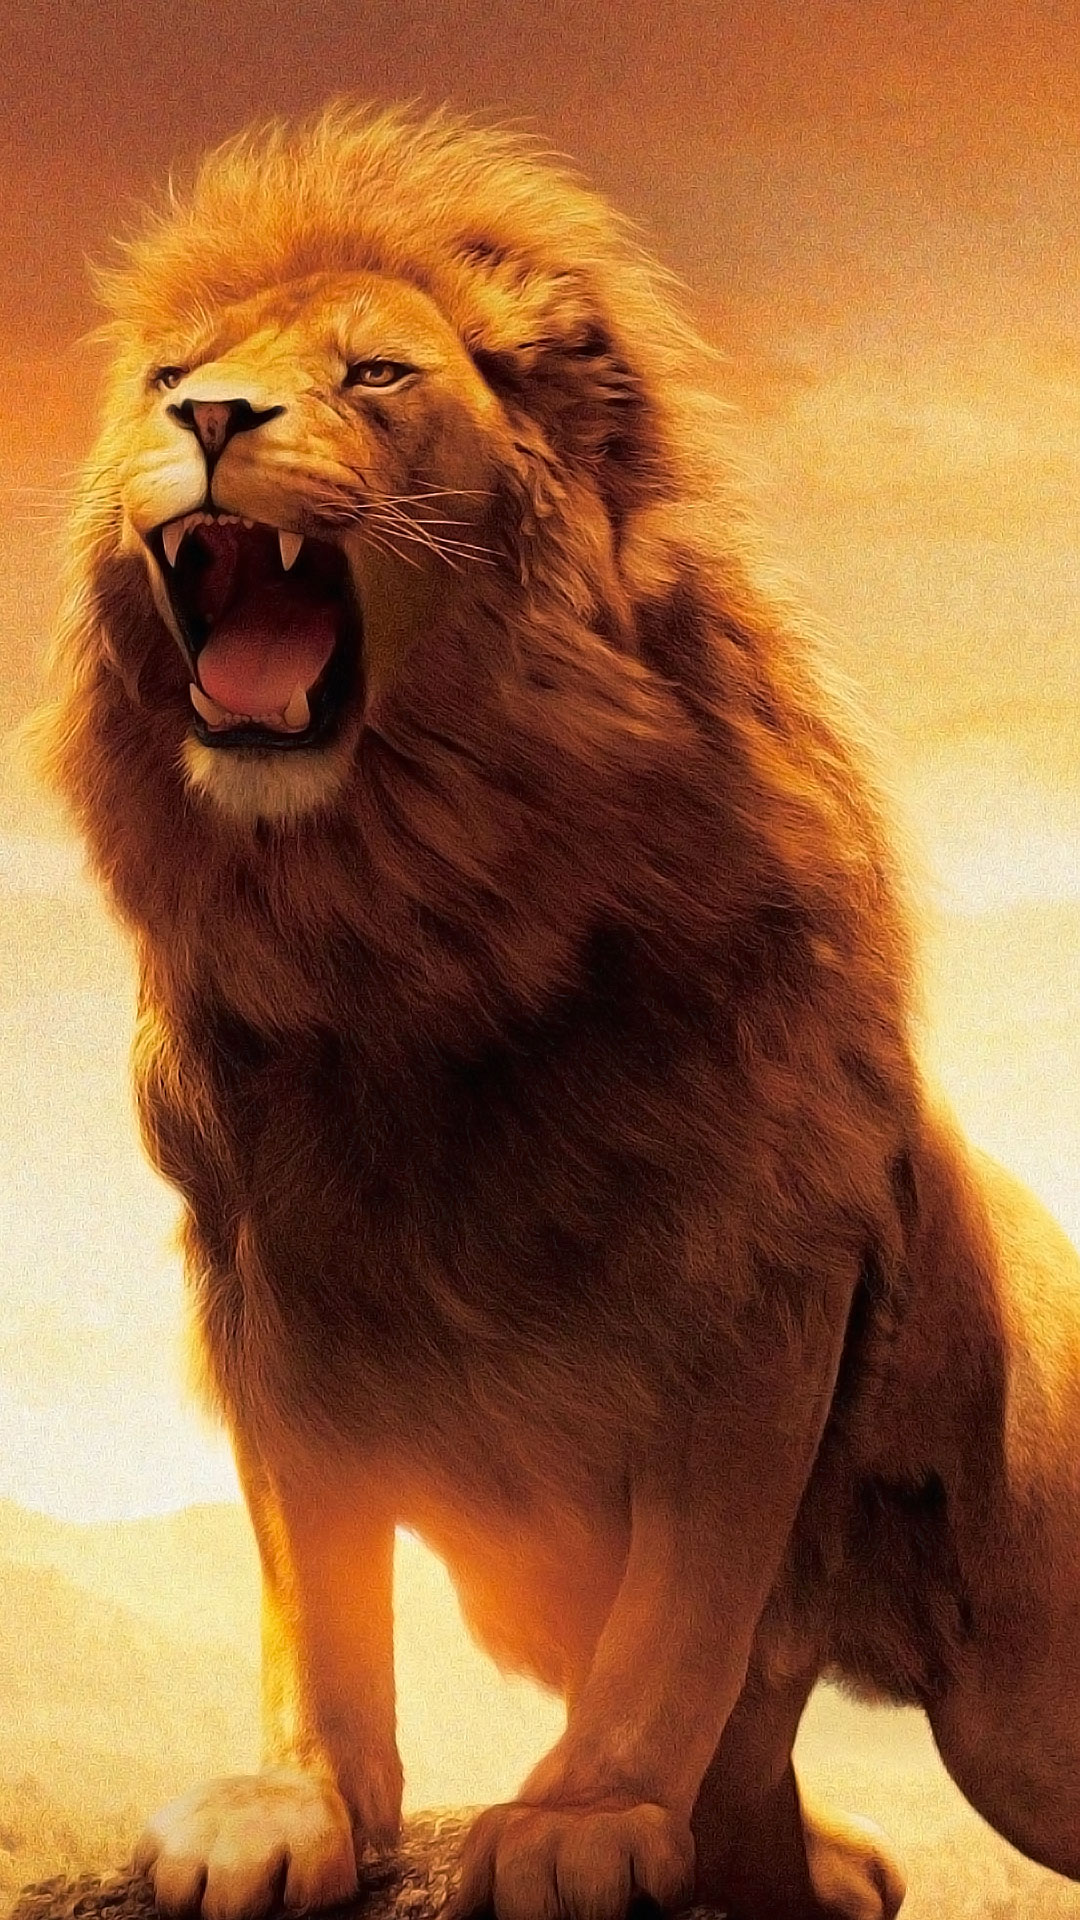 A Lion S Roar 1080x1920 Lion Wallpaper Lion Hd Wallpaper Lion Wallpaper Iphone